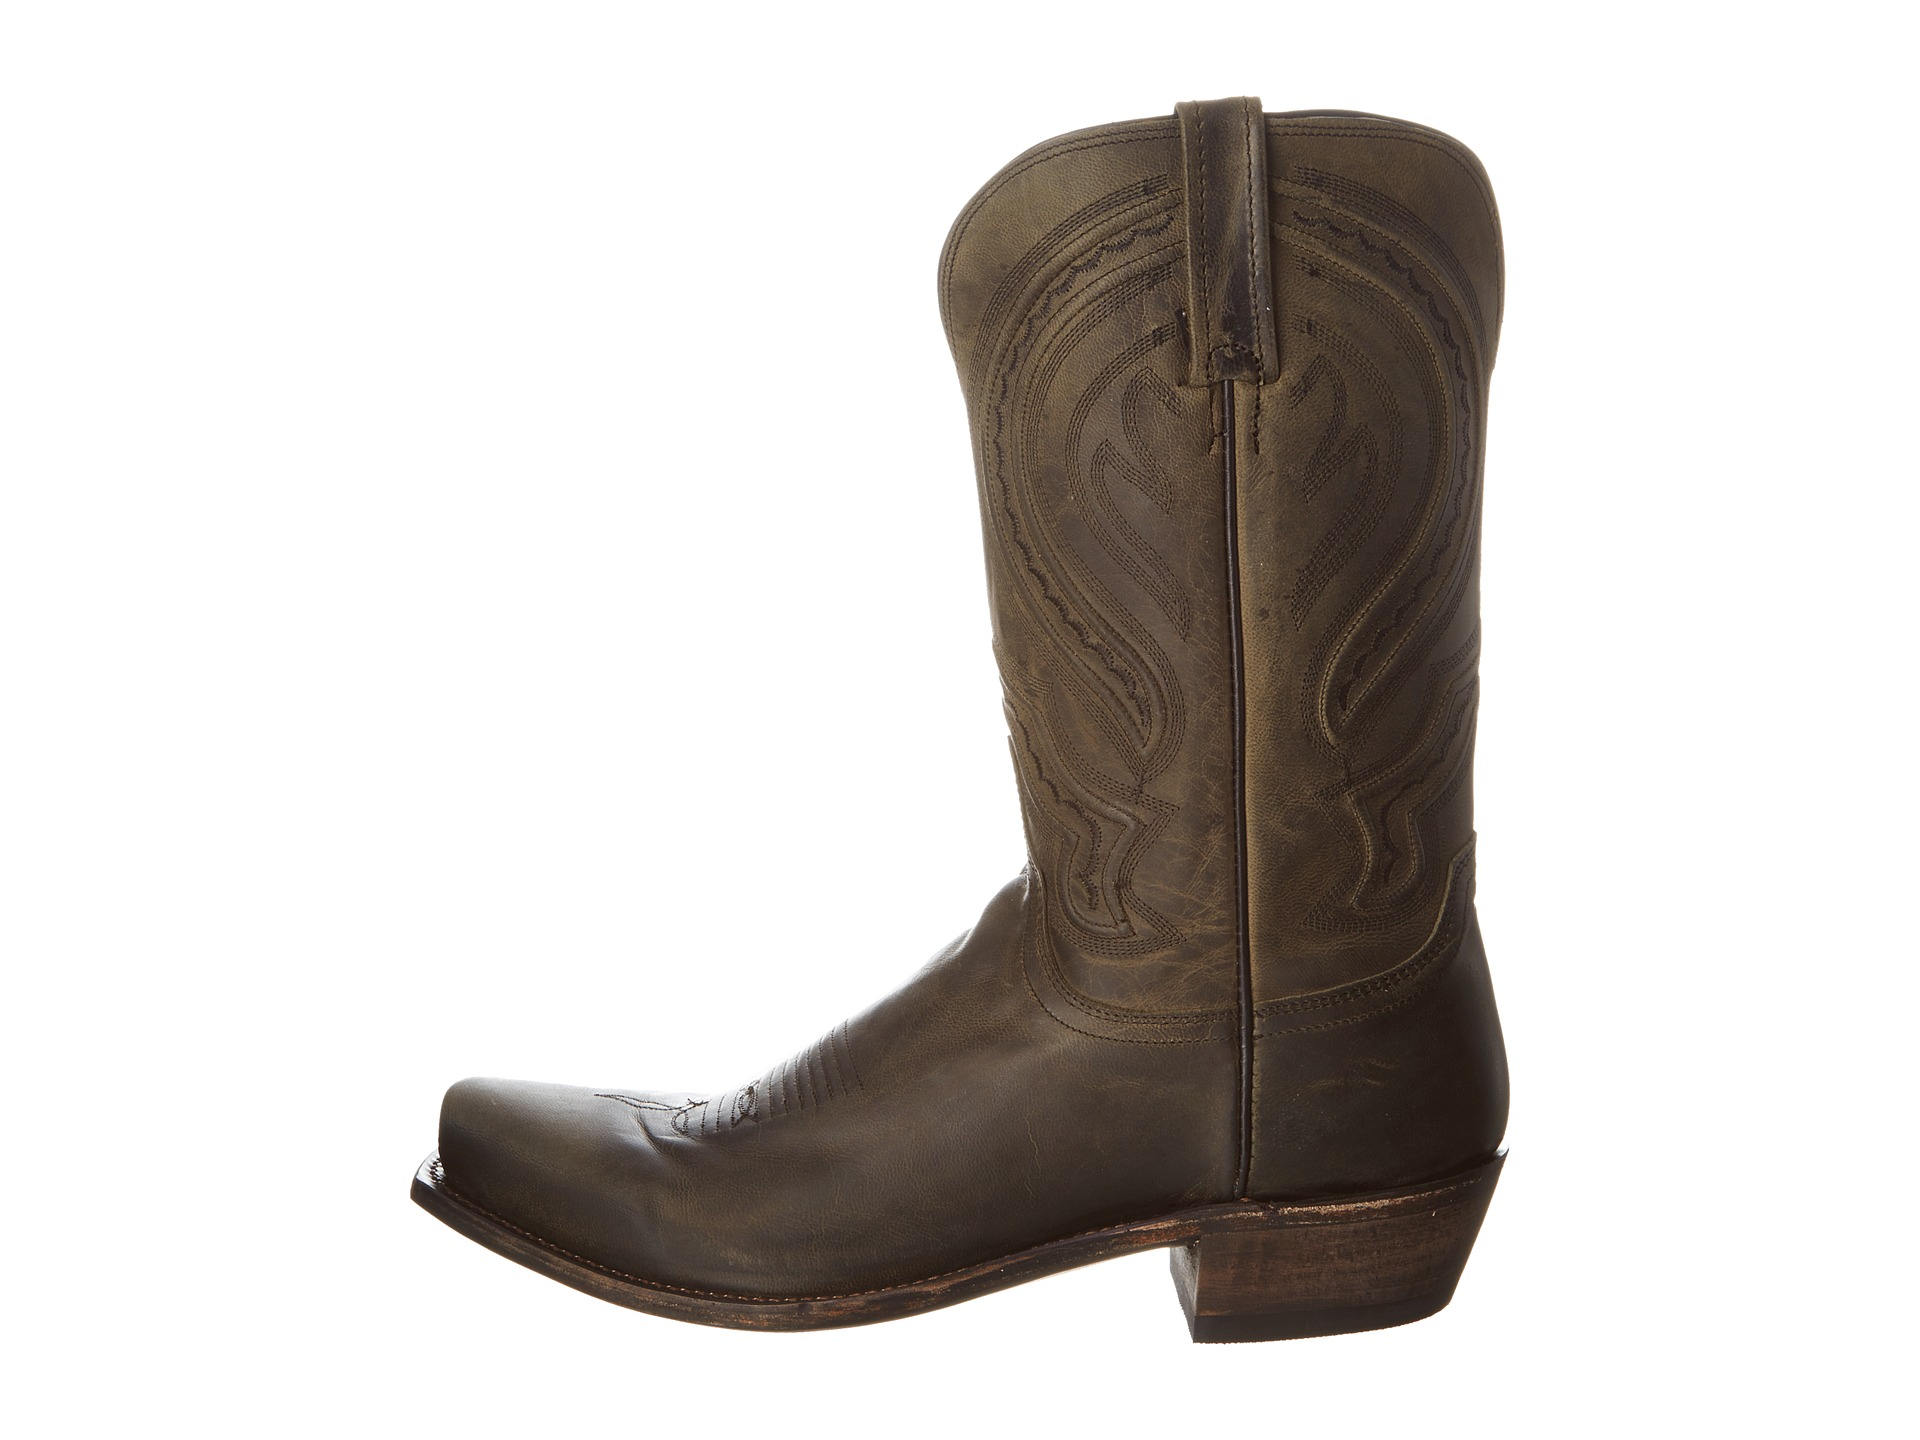 Boots See More Debbie Fortescue Square Toe Cowboy For Men Ariat